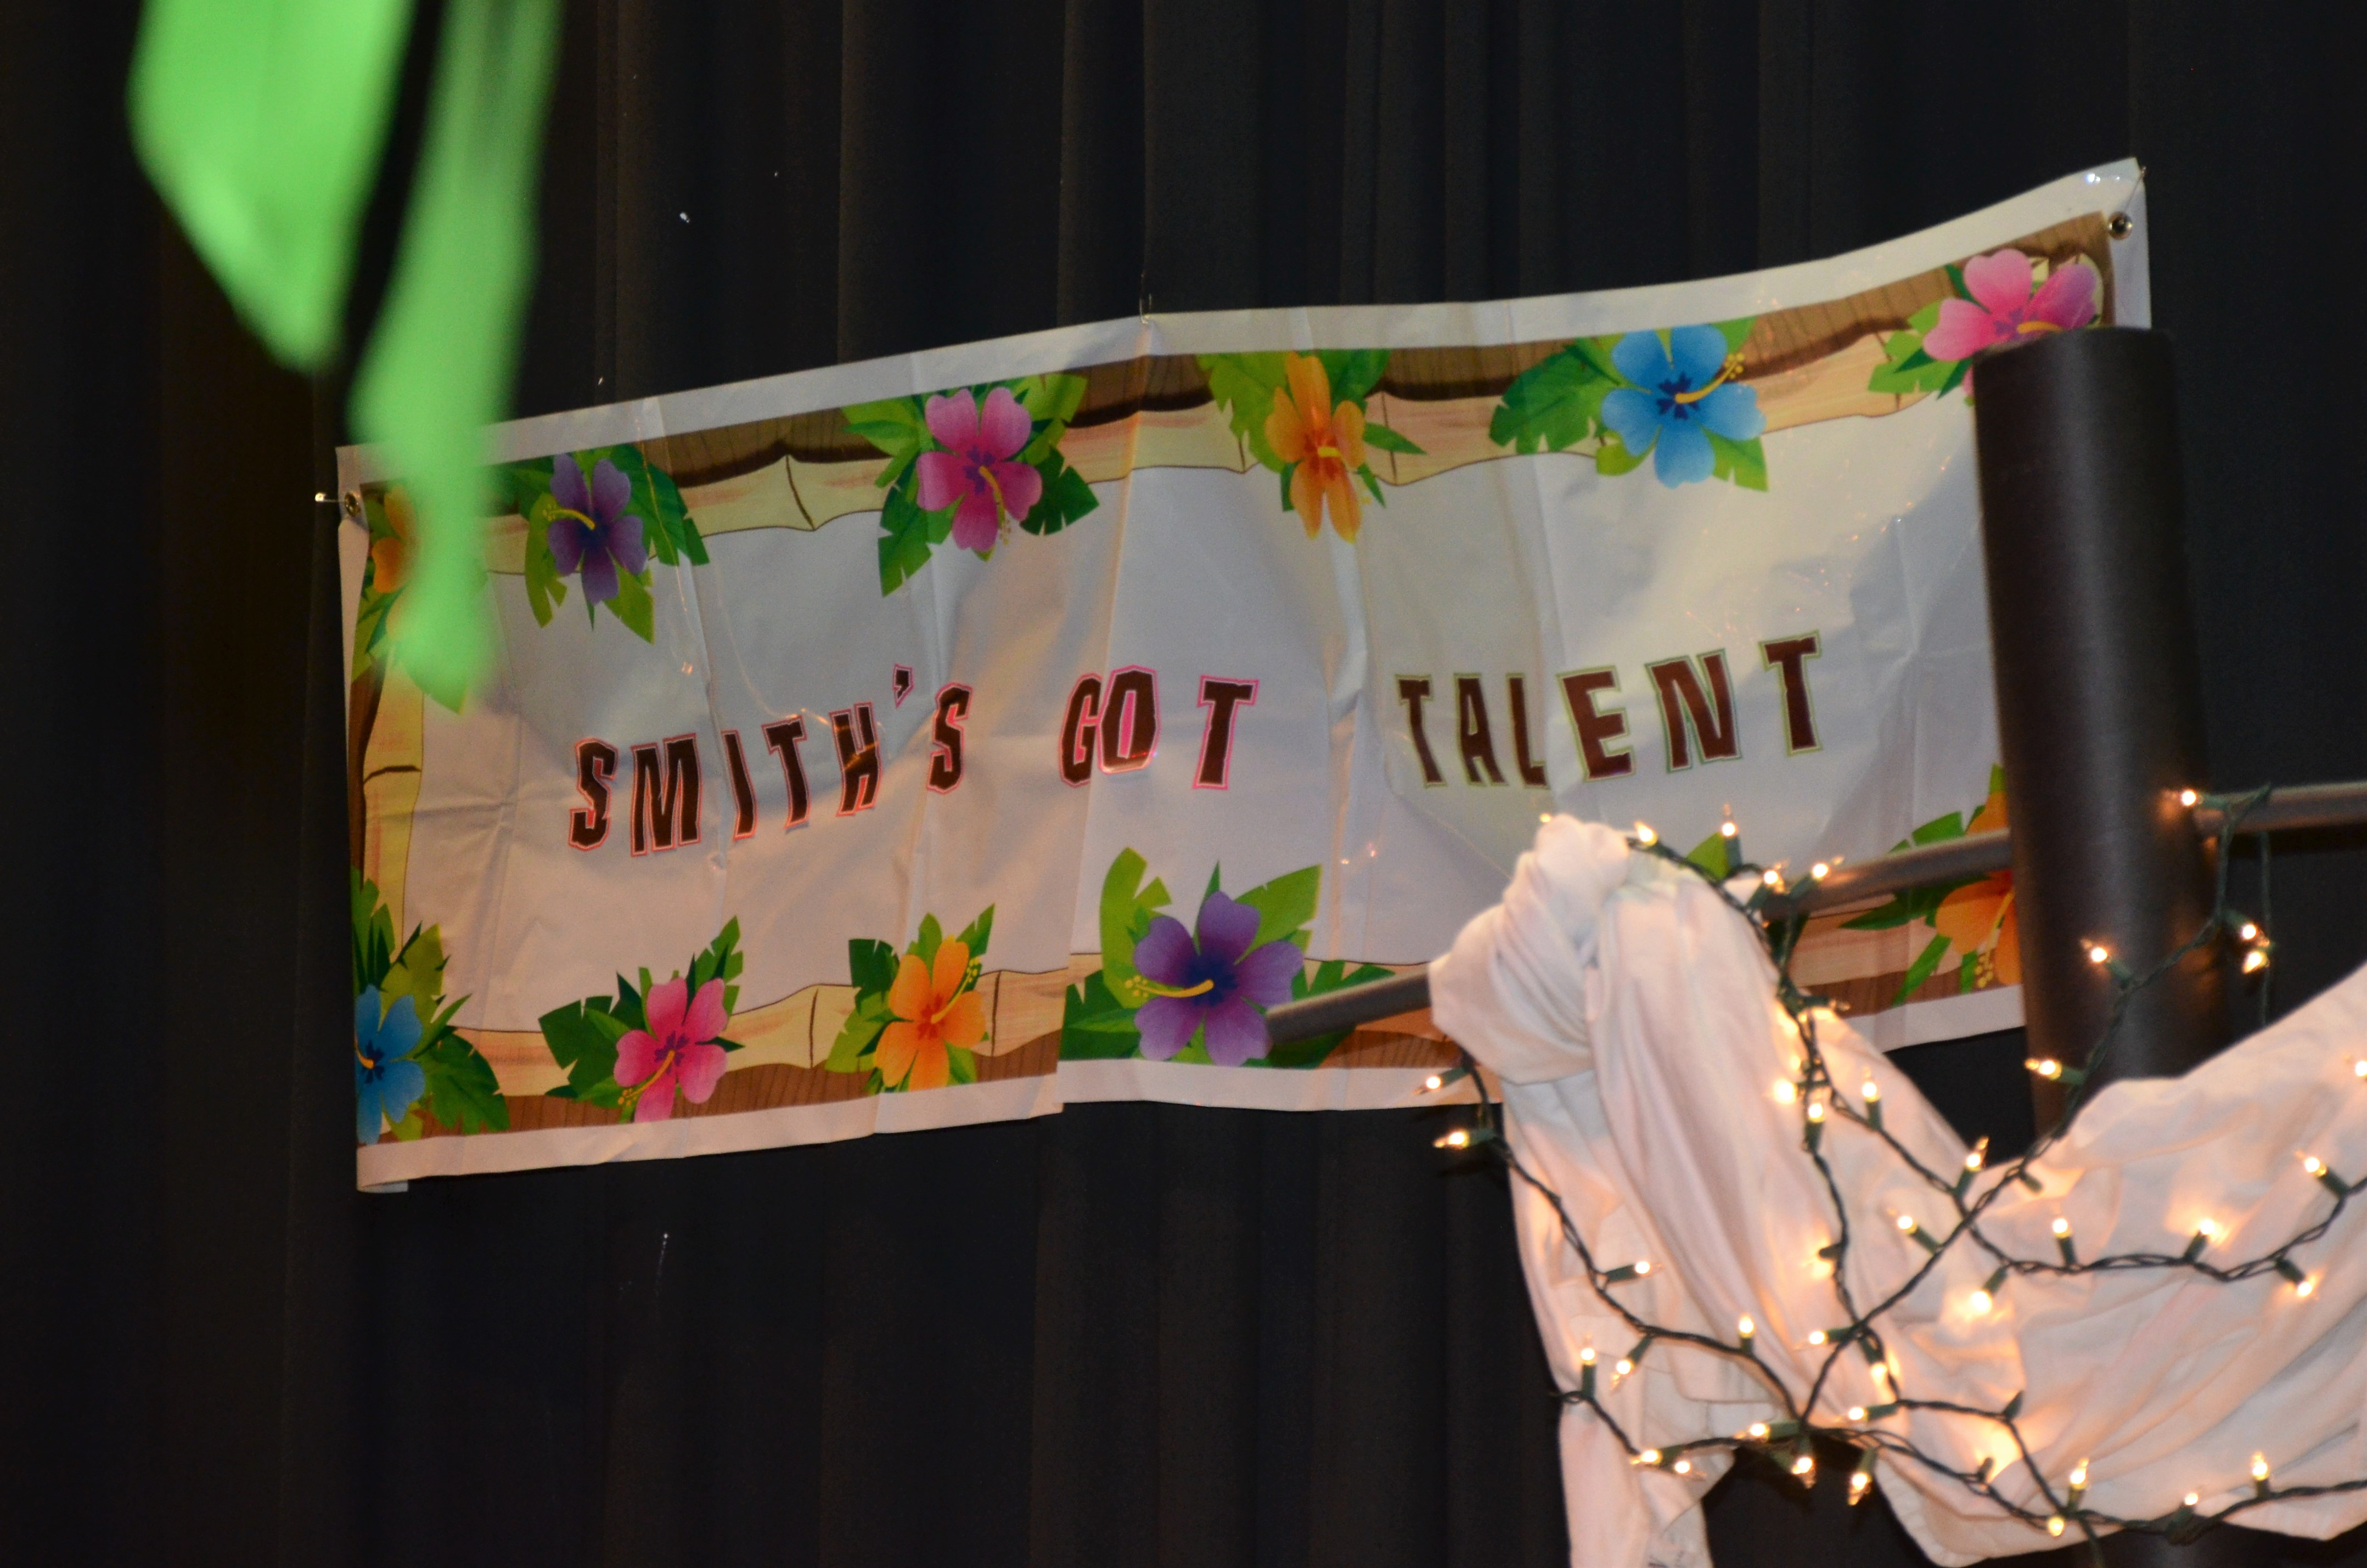 Smith's Got Talent